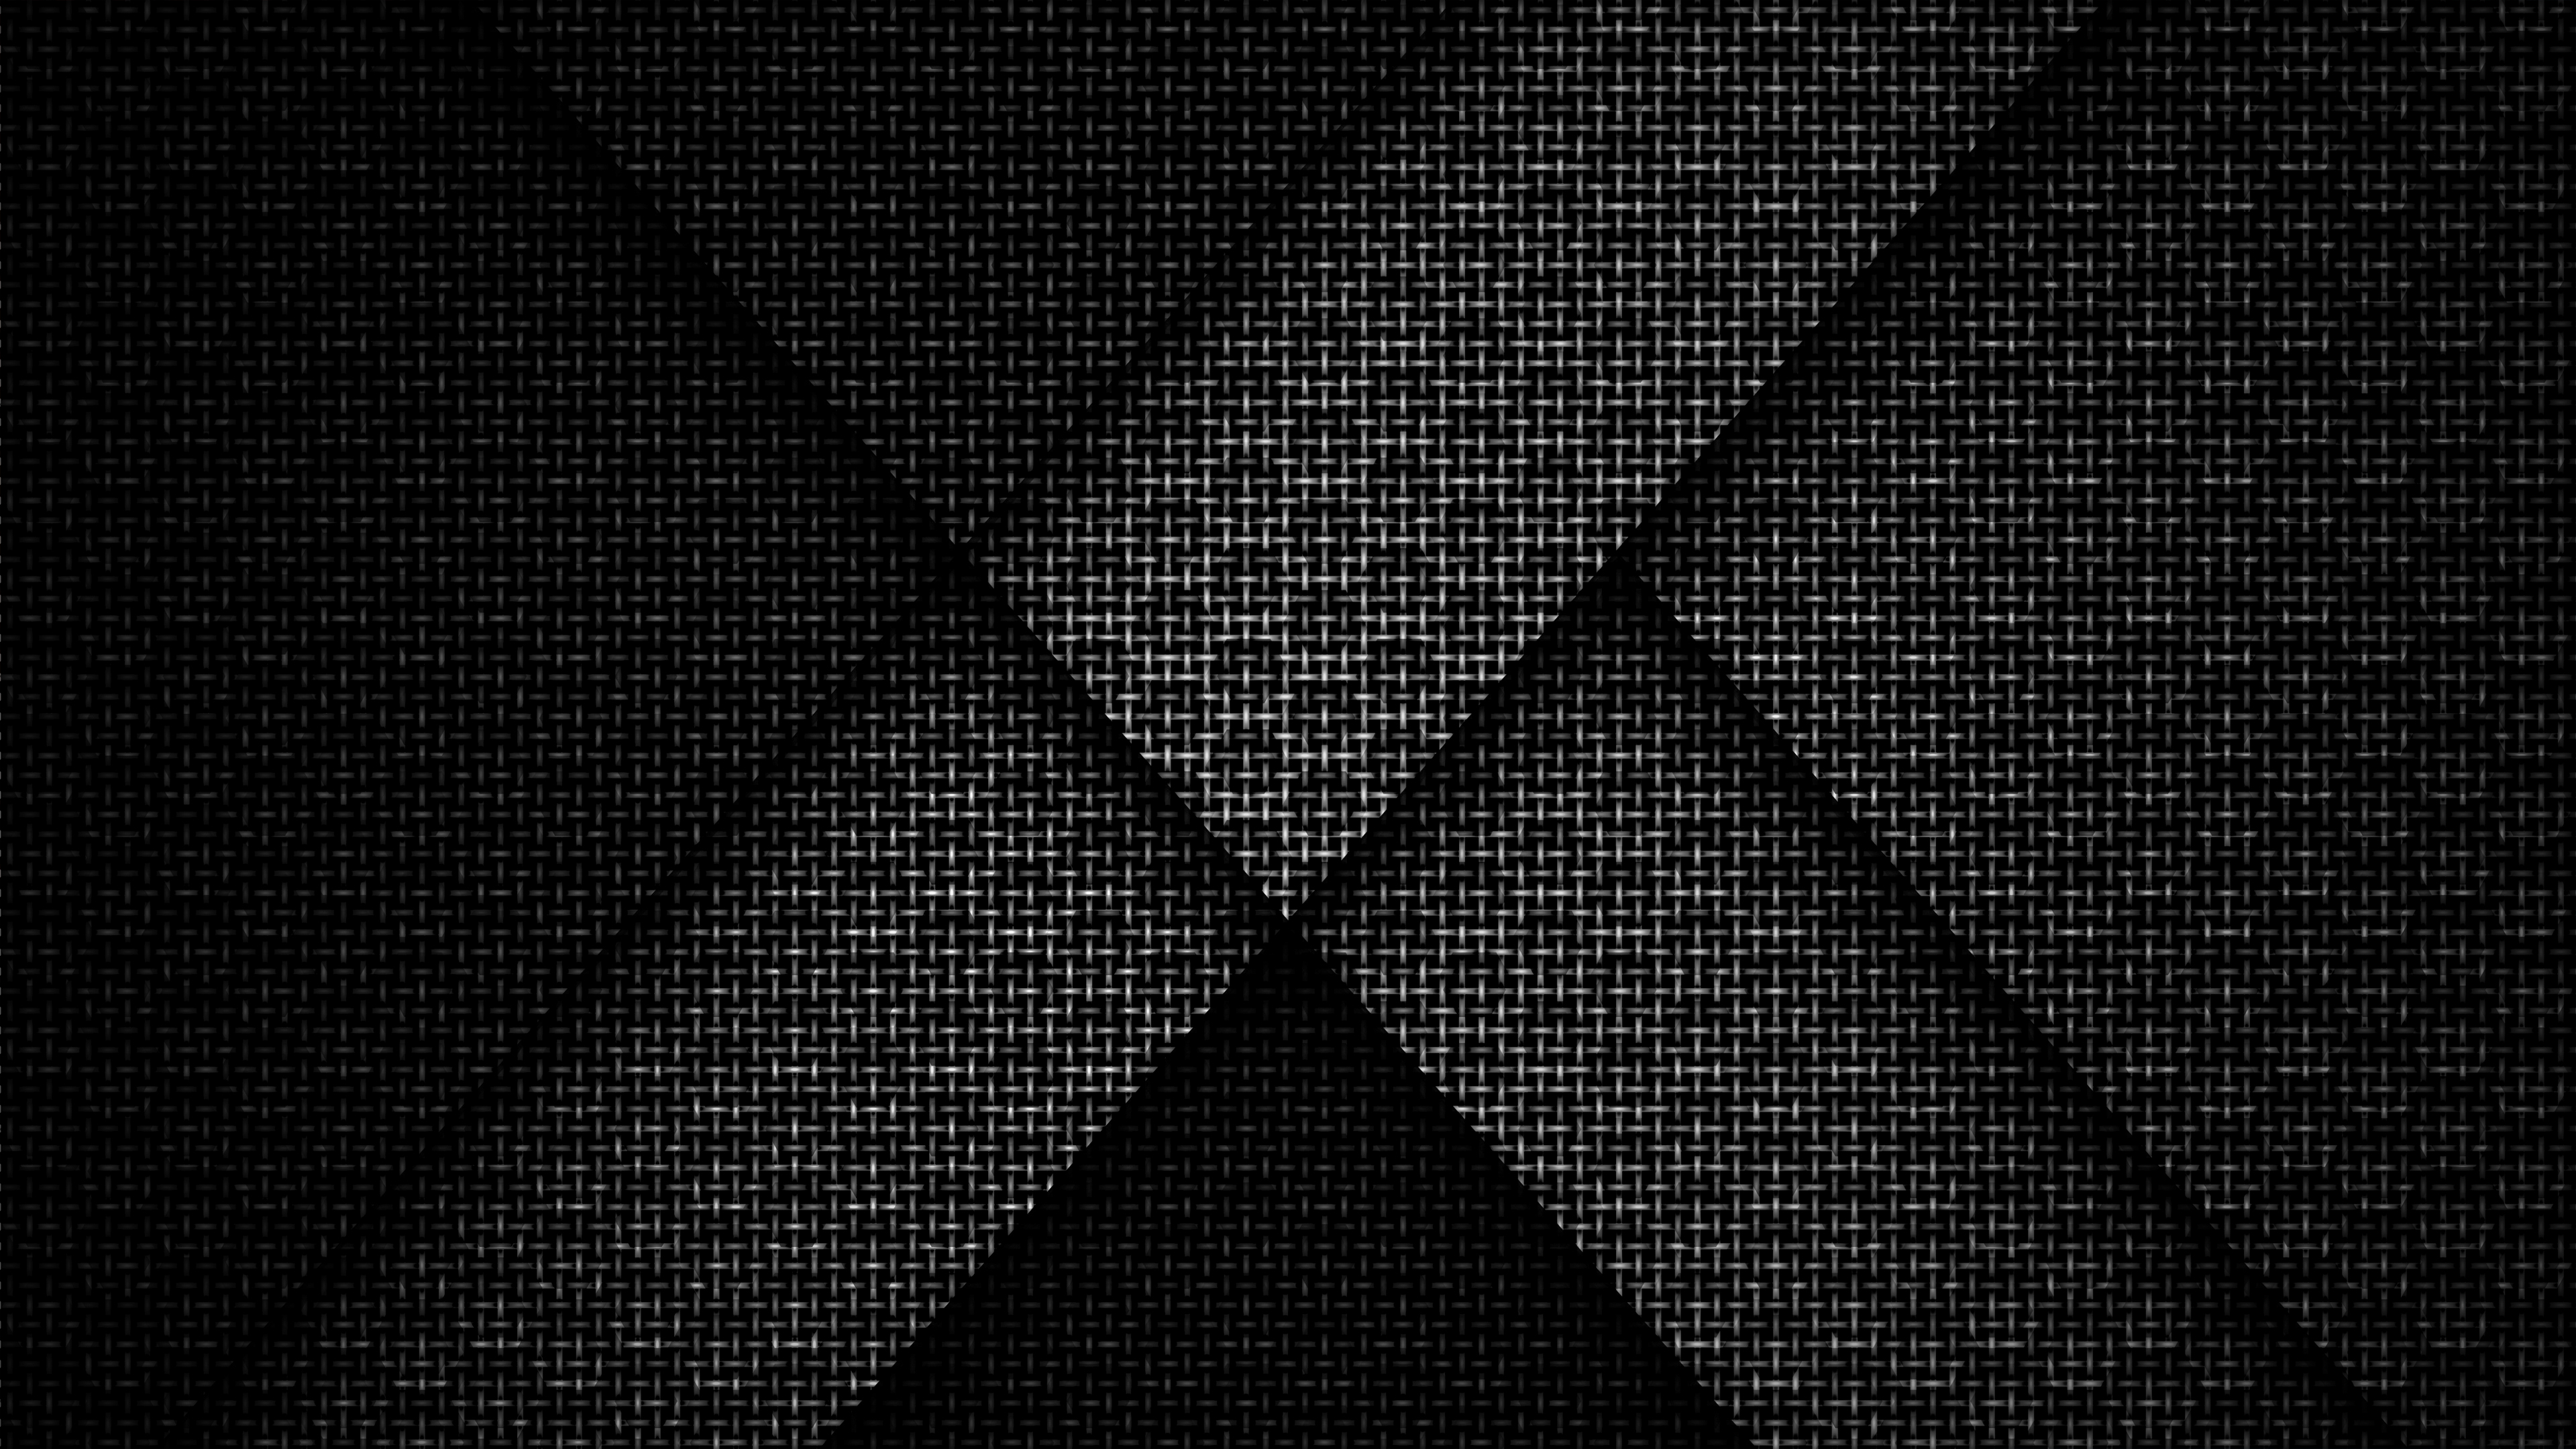 1440x2560 Abstract Pride Black 4k Samsung Galaxy S6 S7 Google Pixel Xl Nexus 6 6p Lg G5 Hd 4k Wallpapers Images Backgrounds Photos And Pictures